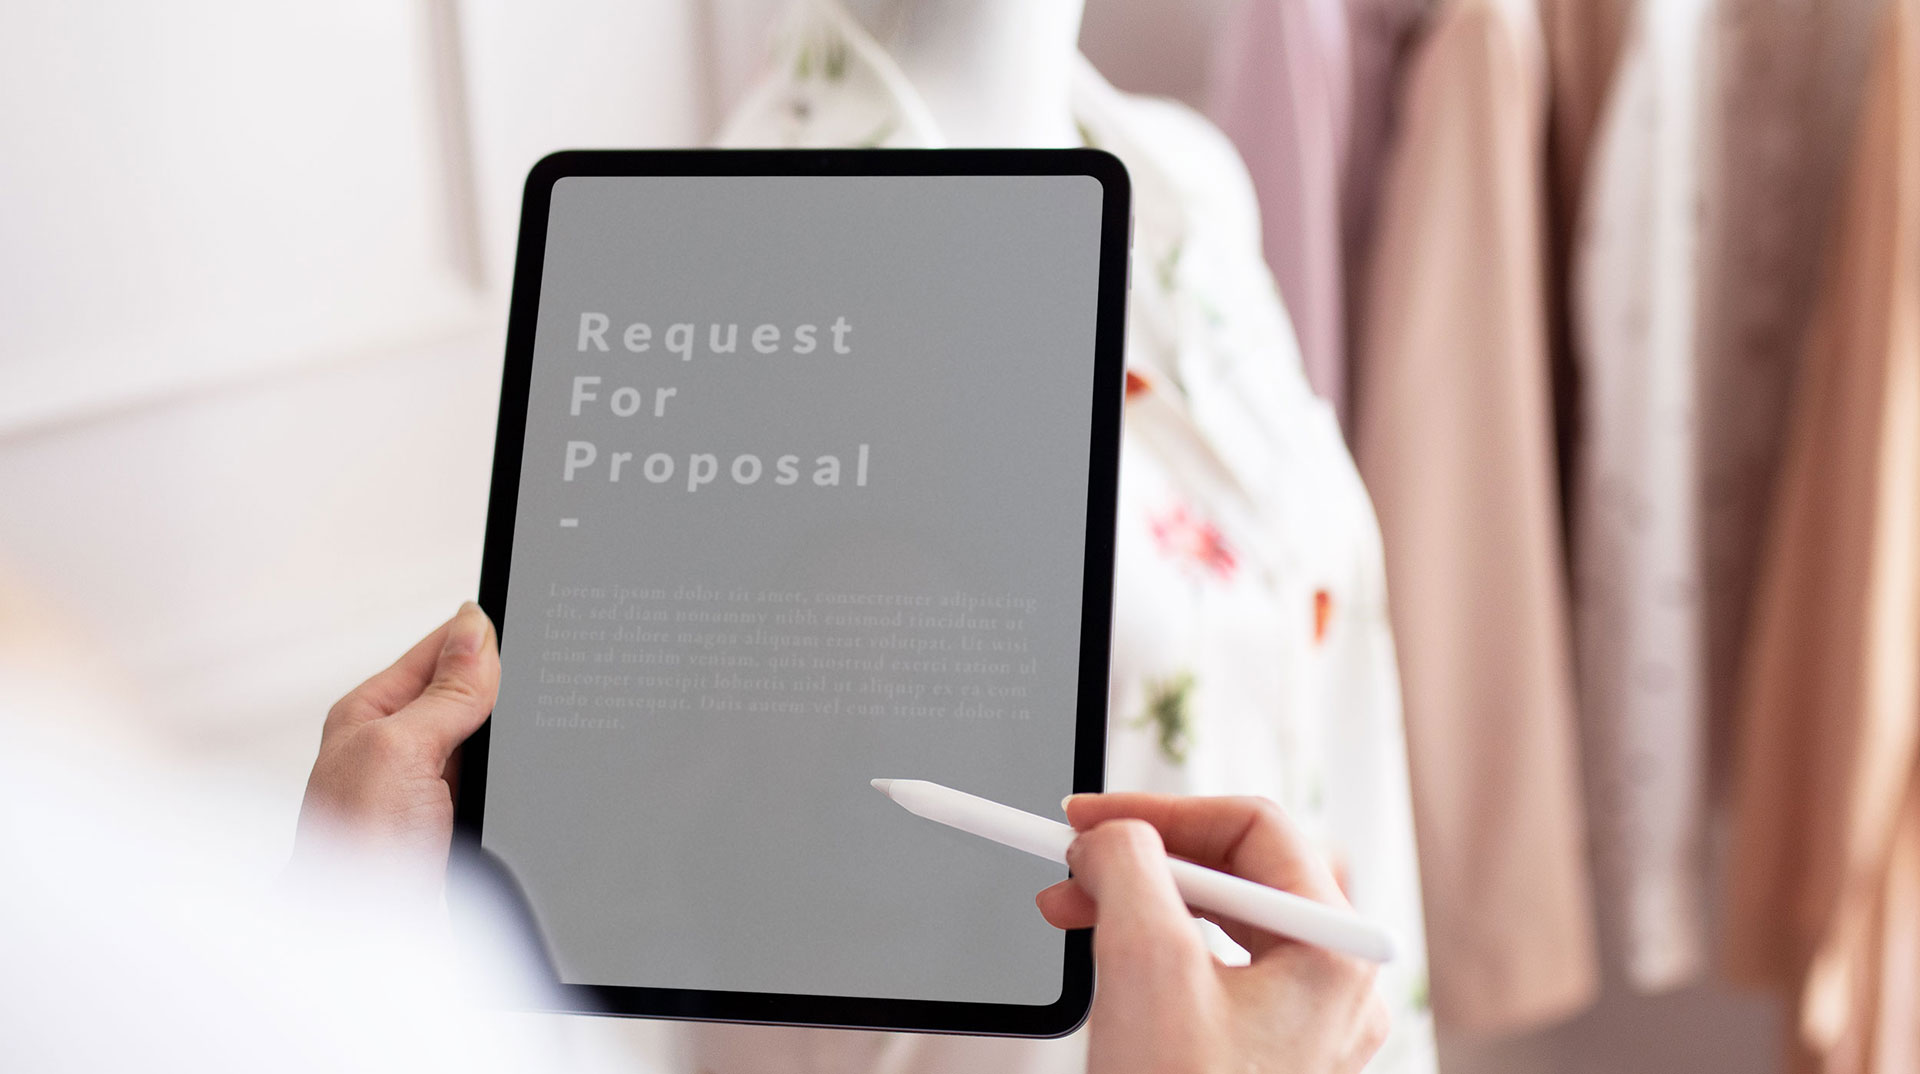 RFP request for proposal website design nz